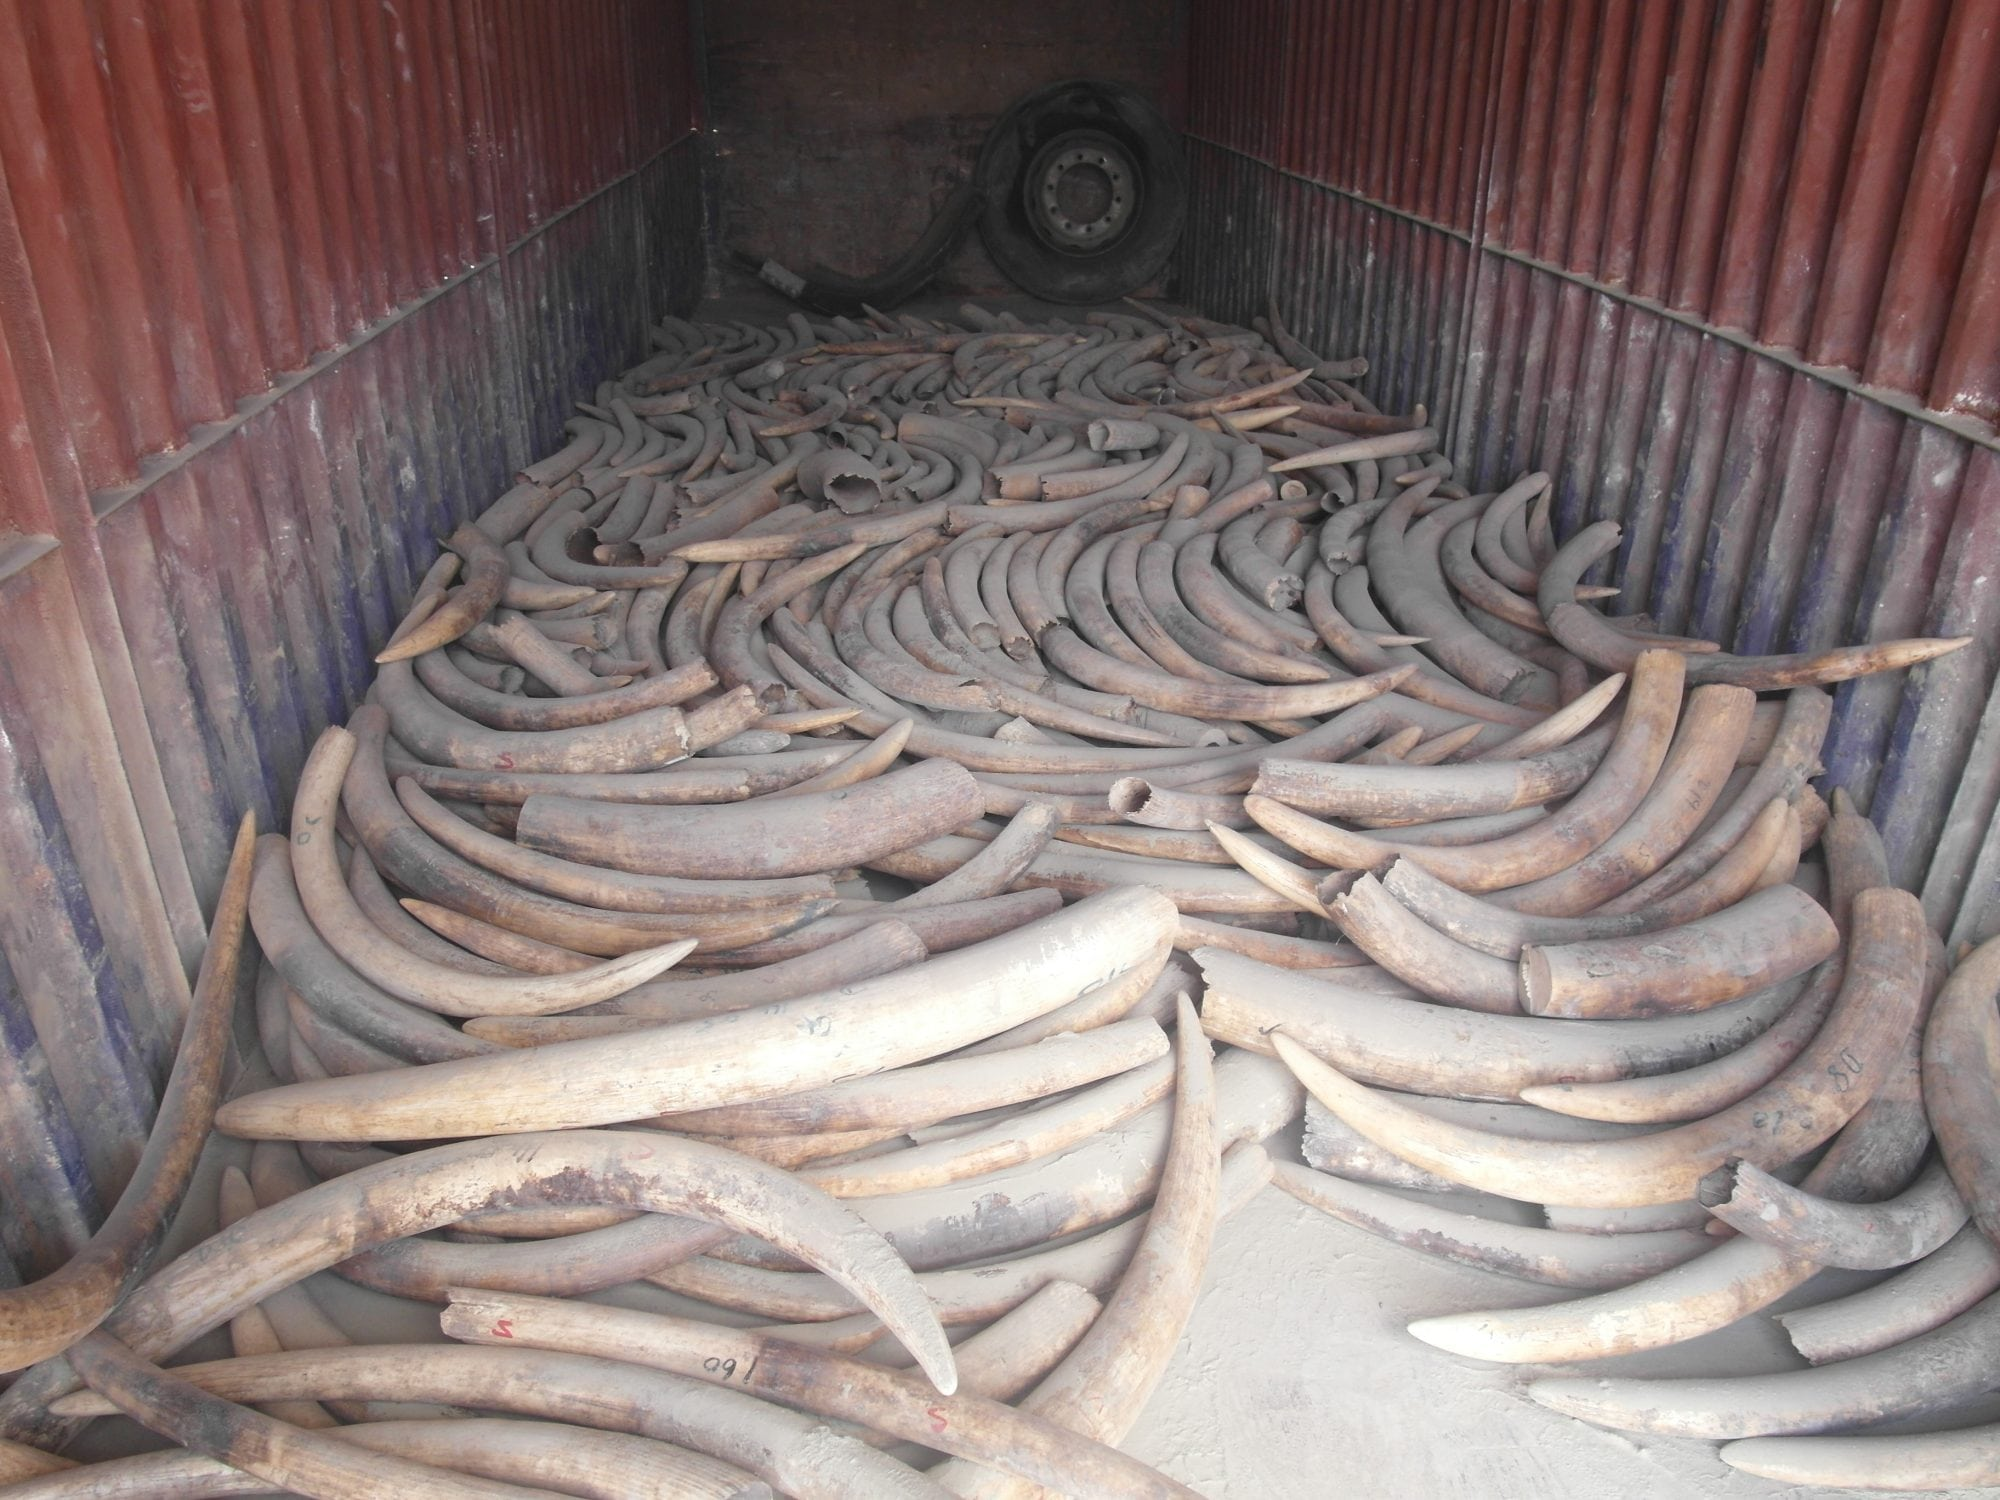 Exposed Ivory in the track